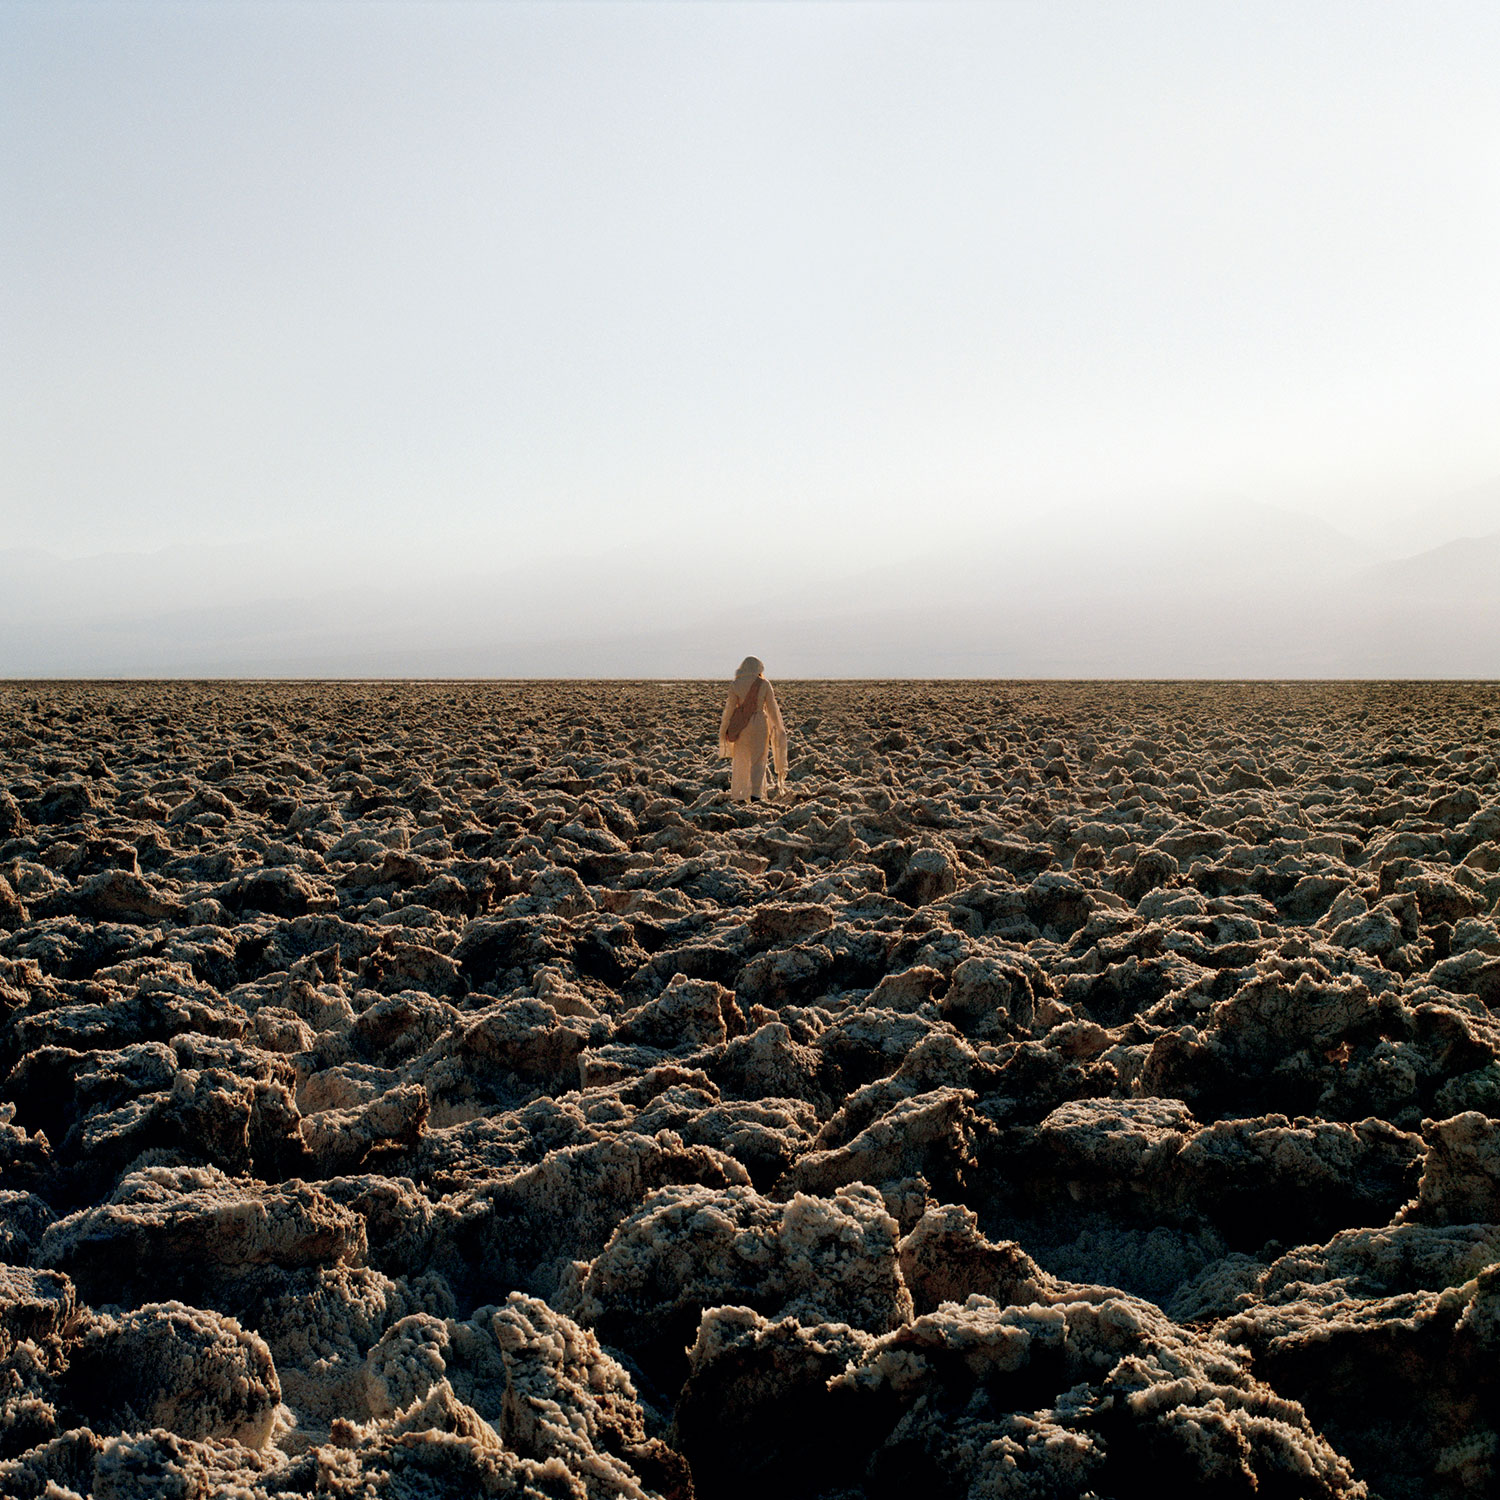 woman in arid landscape